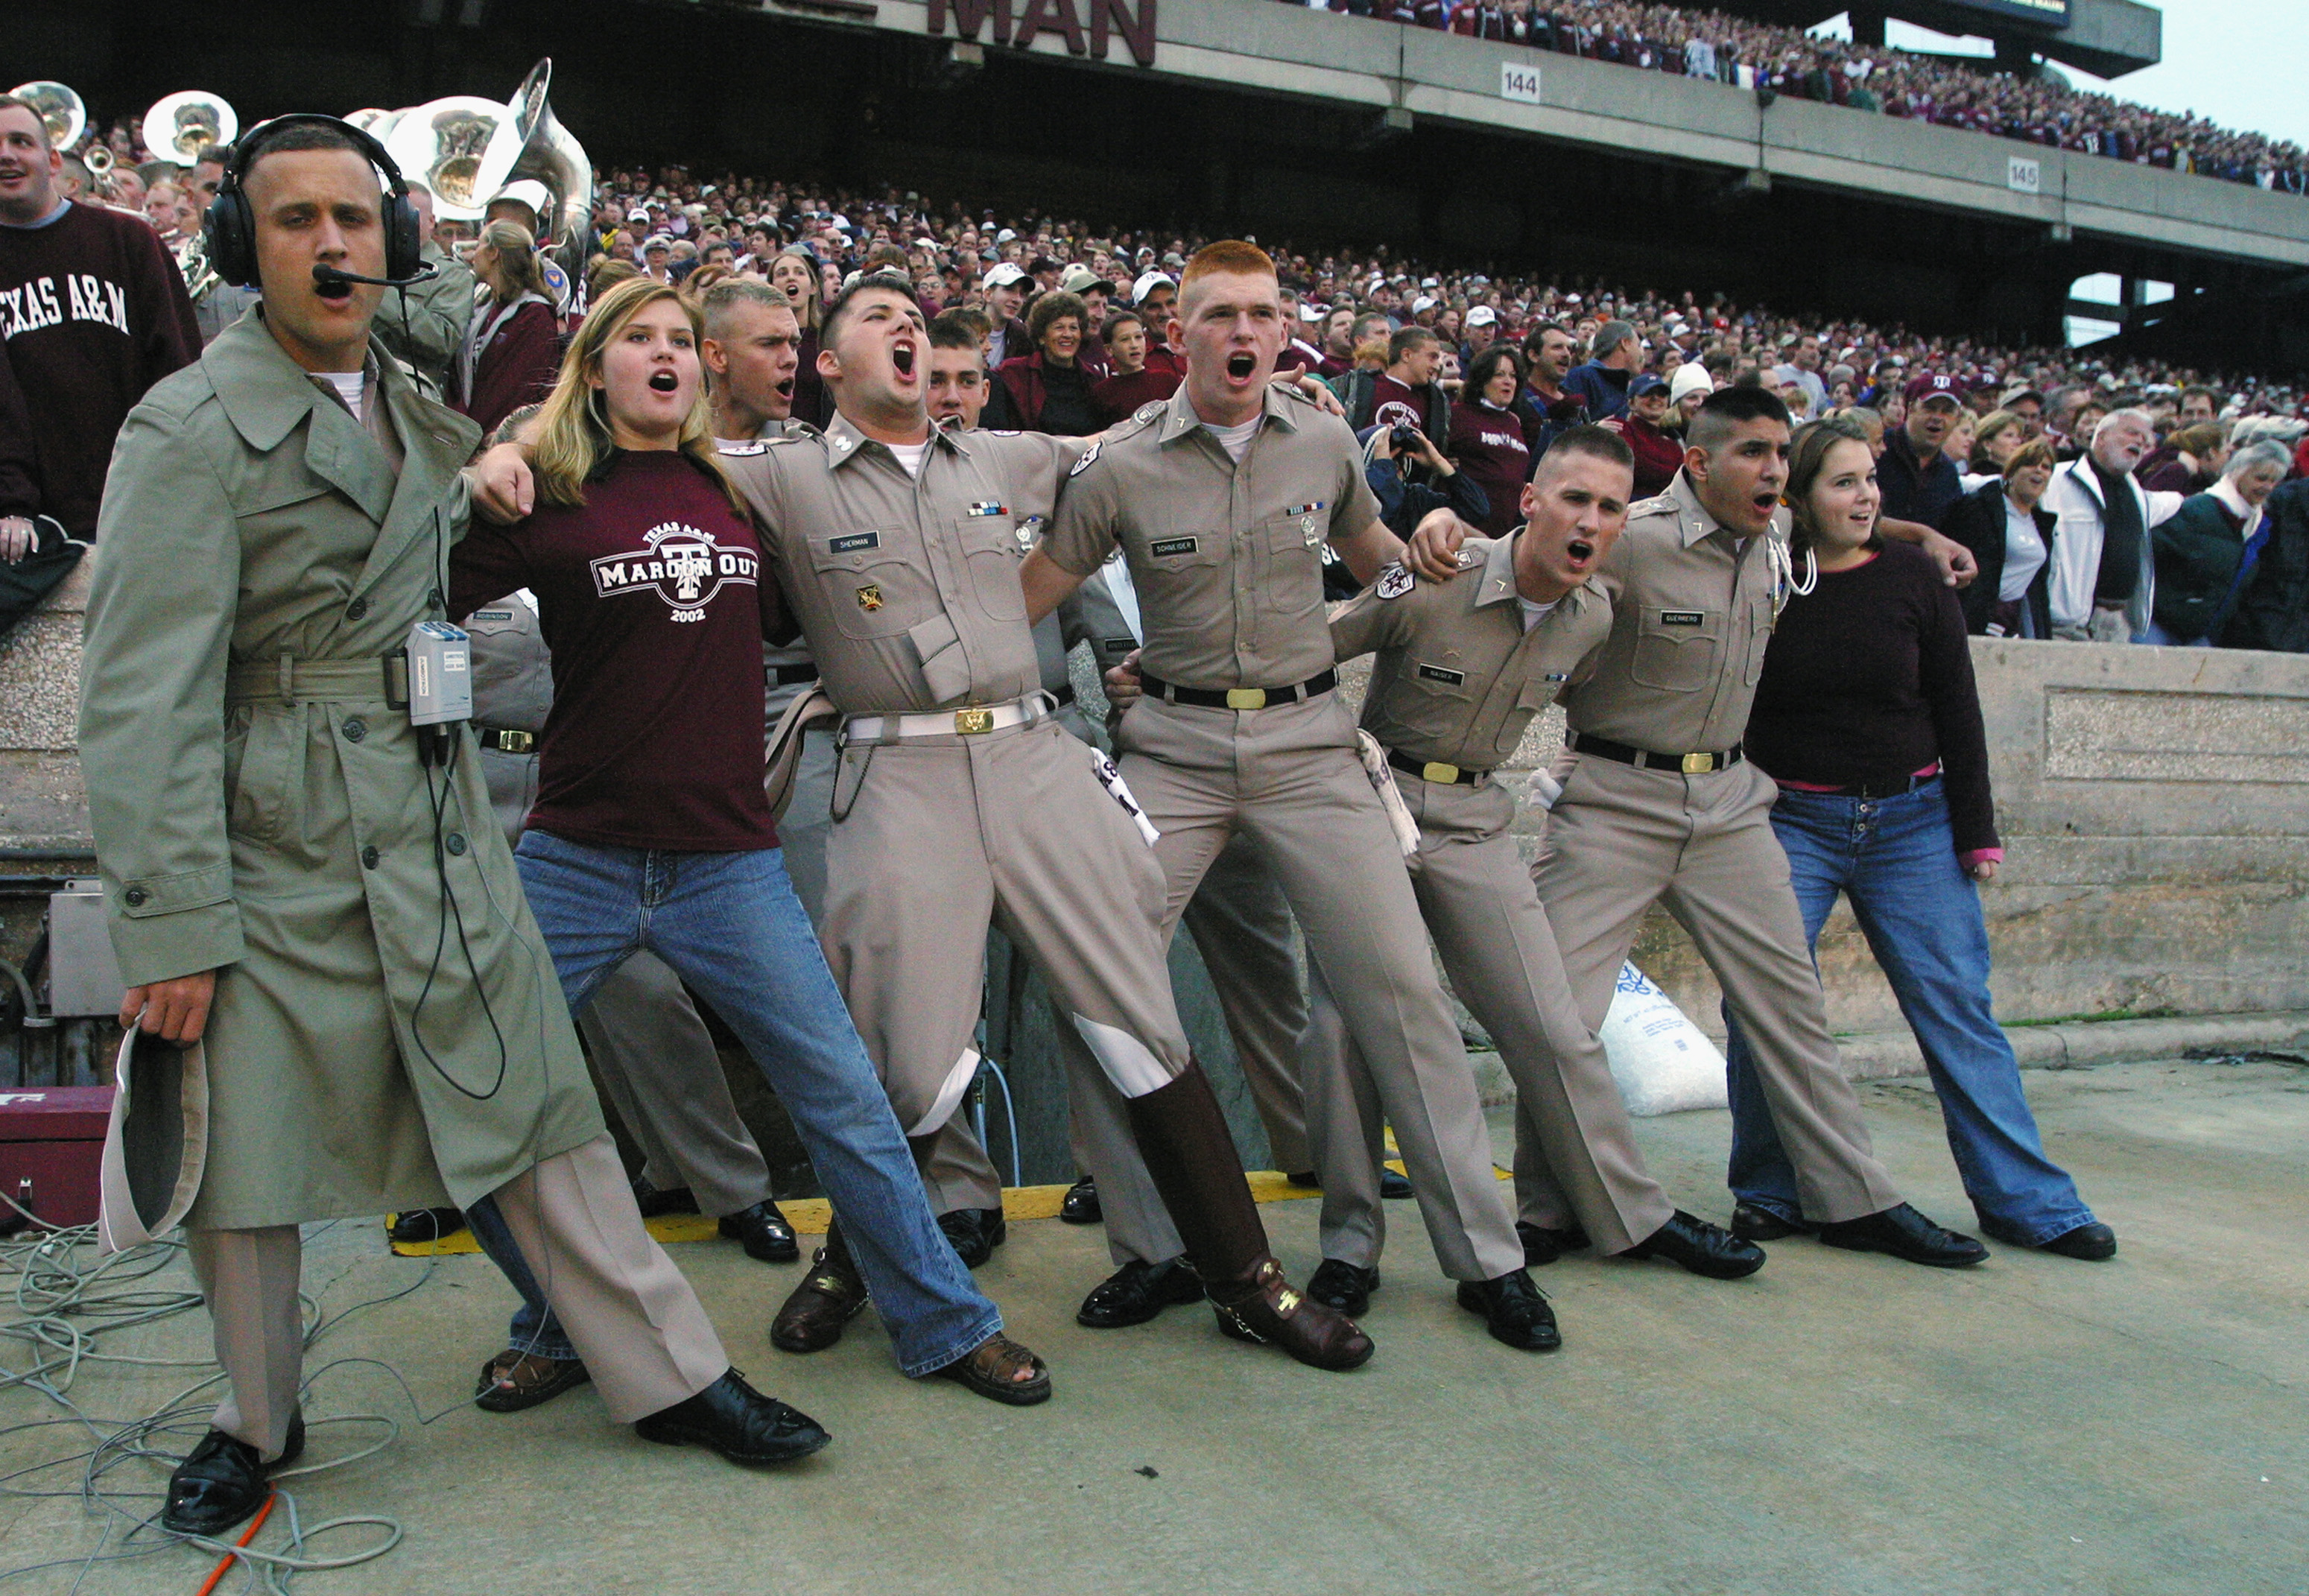 COLLEGE STATION, TX - OCTOBER 26:  Texas A&M Aggies cadets and their dates sing a school fight song and do a traditional arm in arm swaying in the game on October 26, 2002 versus the Nebraska Cornhuskers at Kyle Field at College Station, Texas. Nebraska w